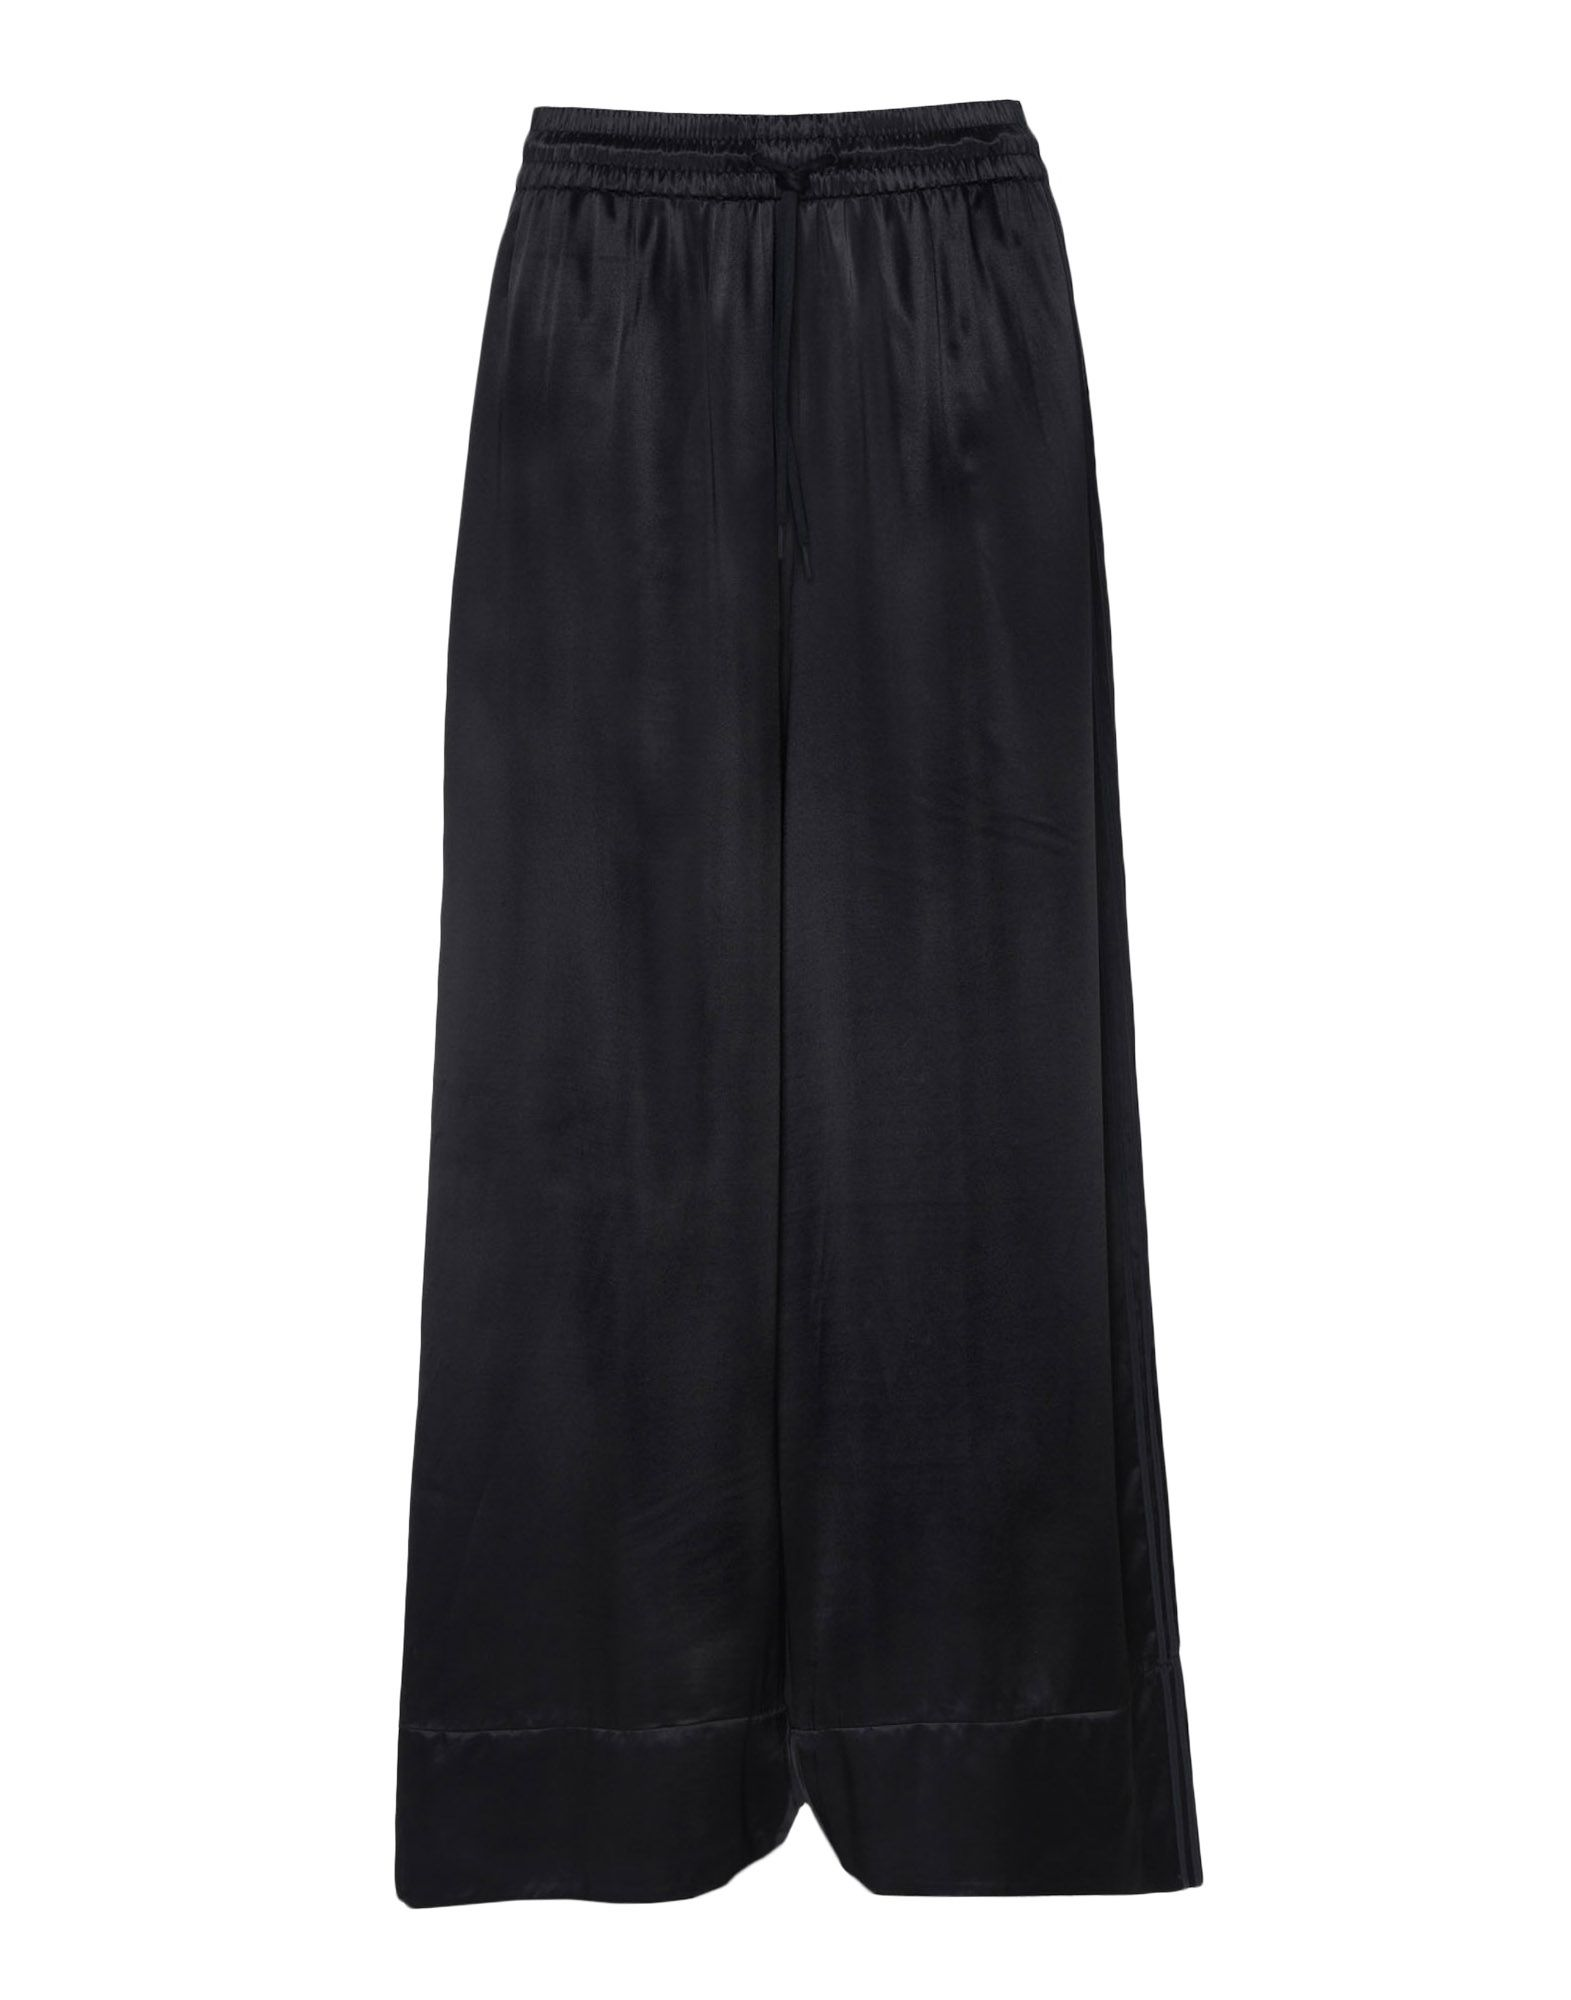 Y-3 Y-3 3-Stripes Lux Wide Track Pants Casual pants Woman f